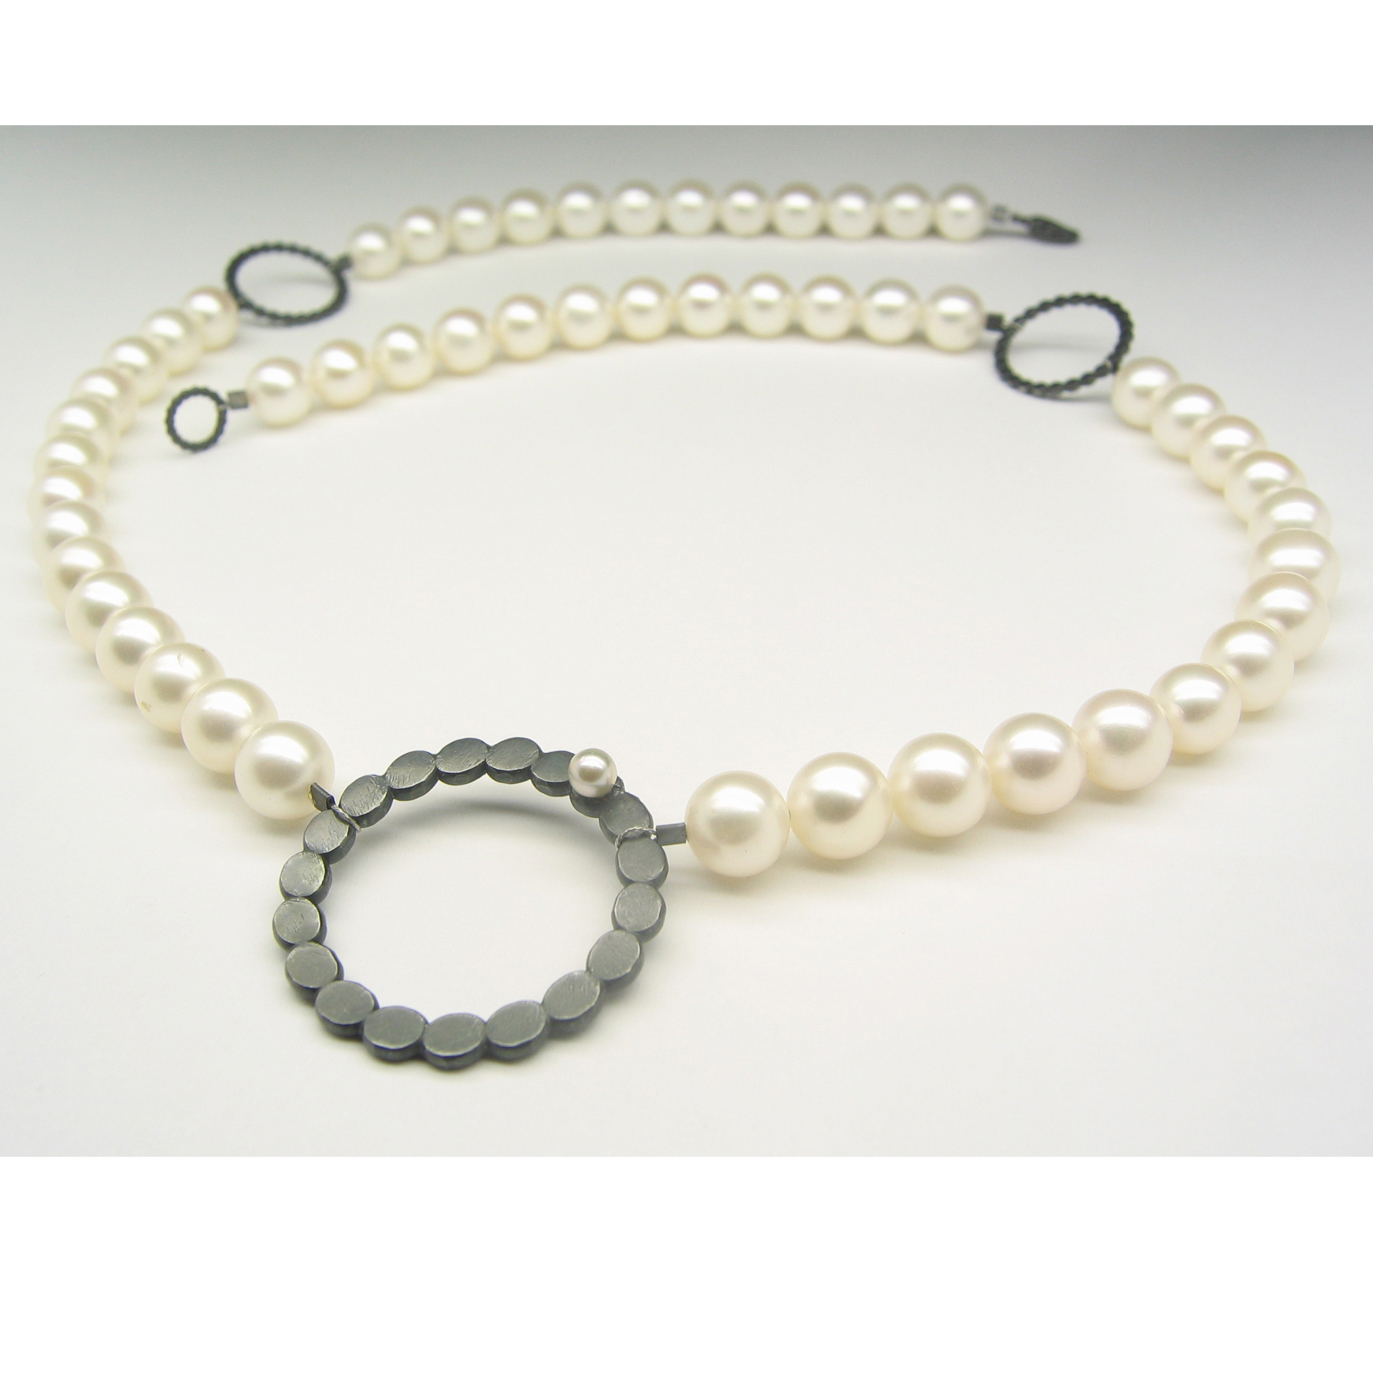 2891d0d877ac9 enso pearl oxi necklace | Contemporary Necklaces / Pendants by ...